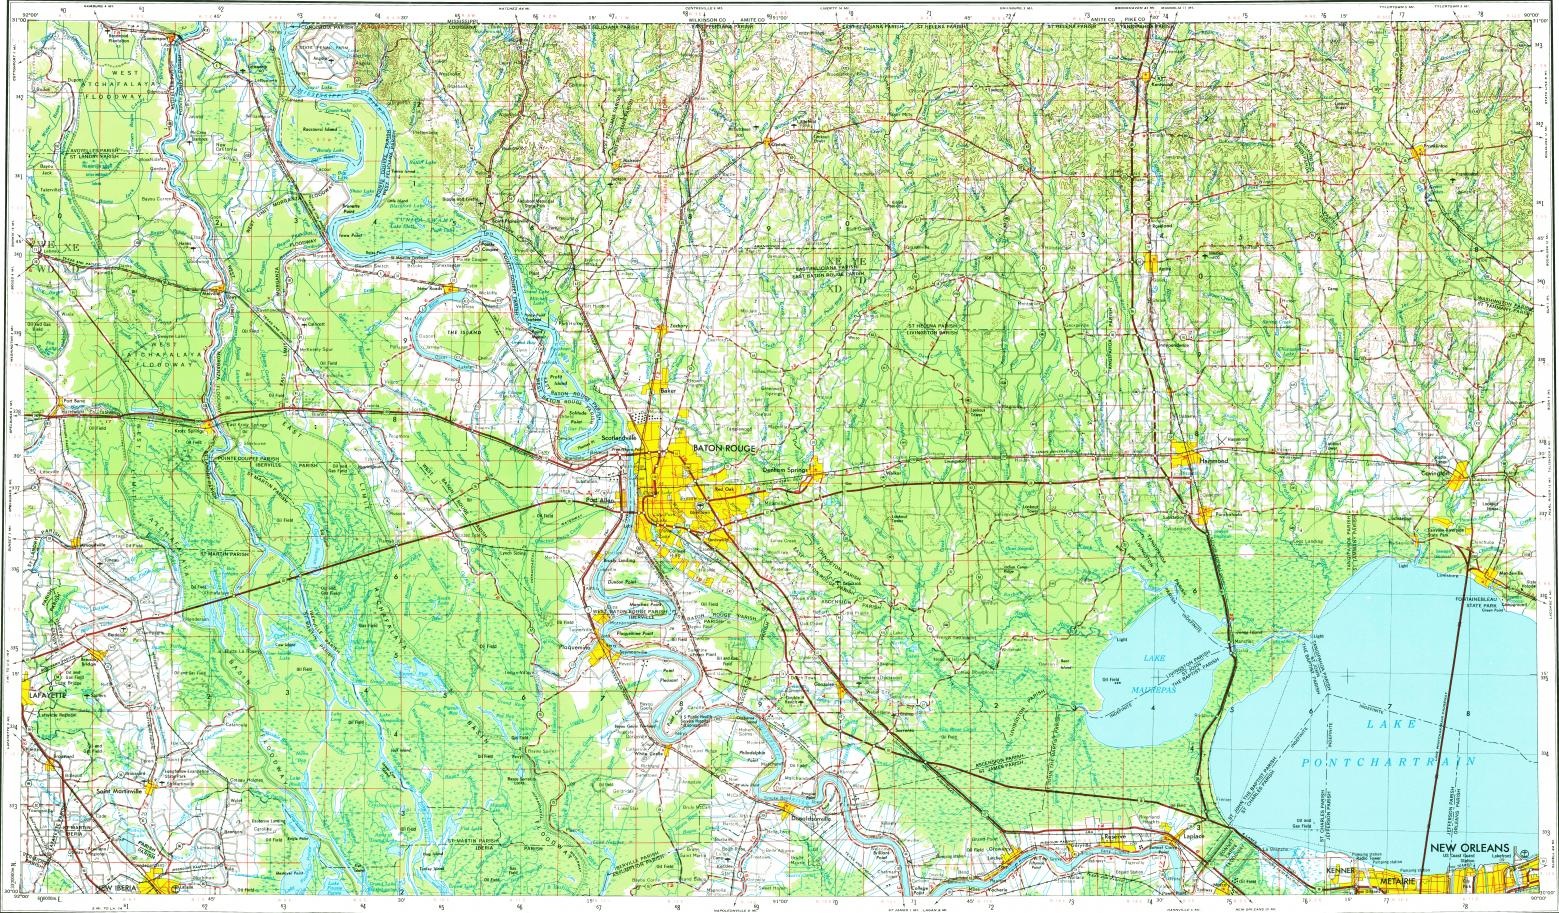 Download topographic map in area of Baton Rouge Kenner New Iberia